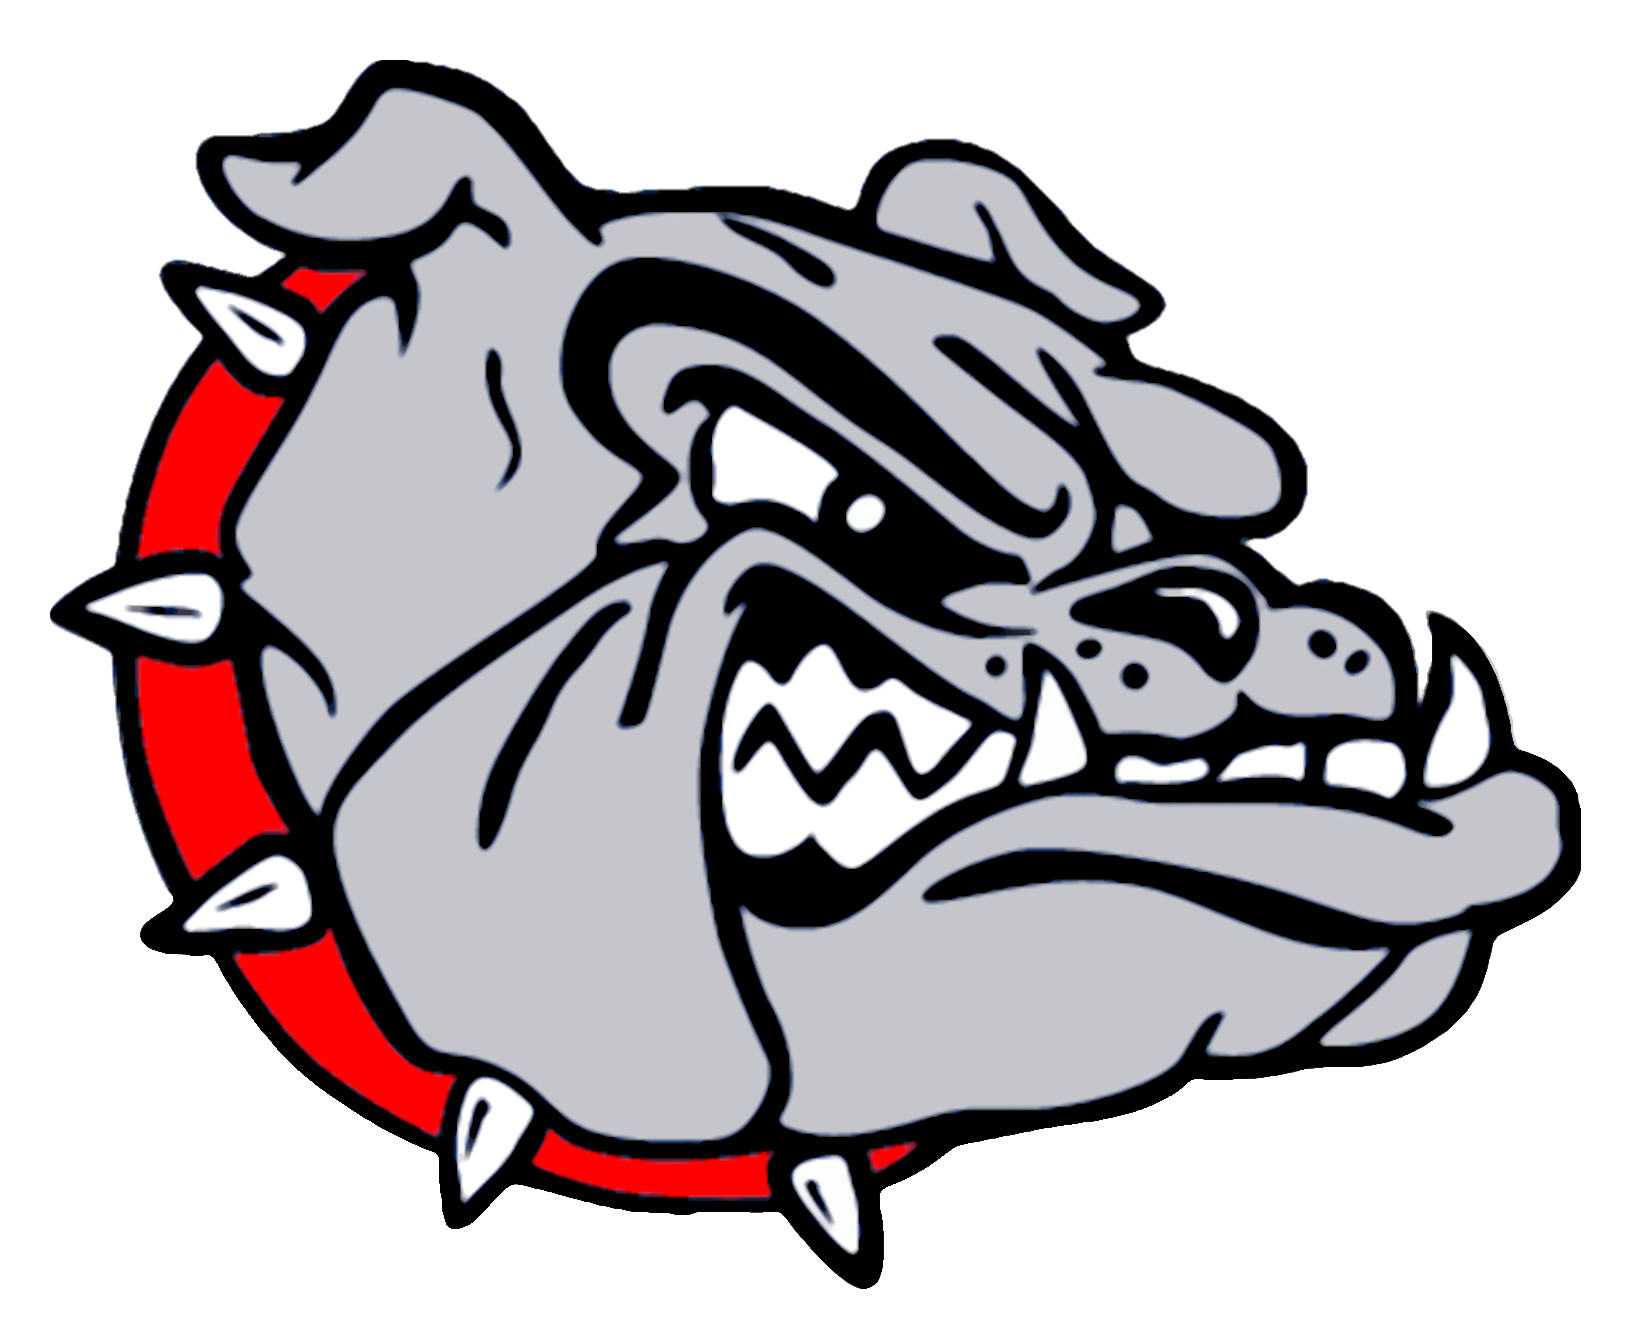 1352820319155016957bulldogs logo cut